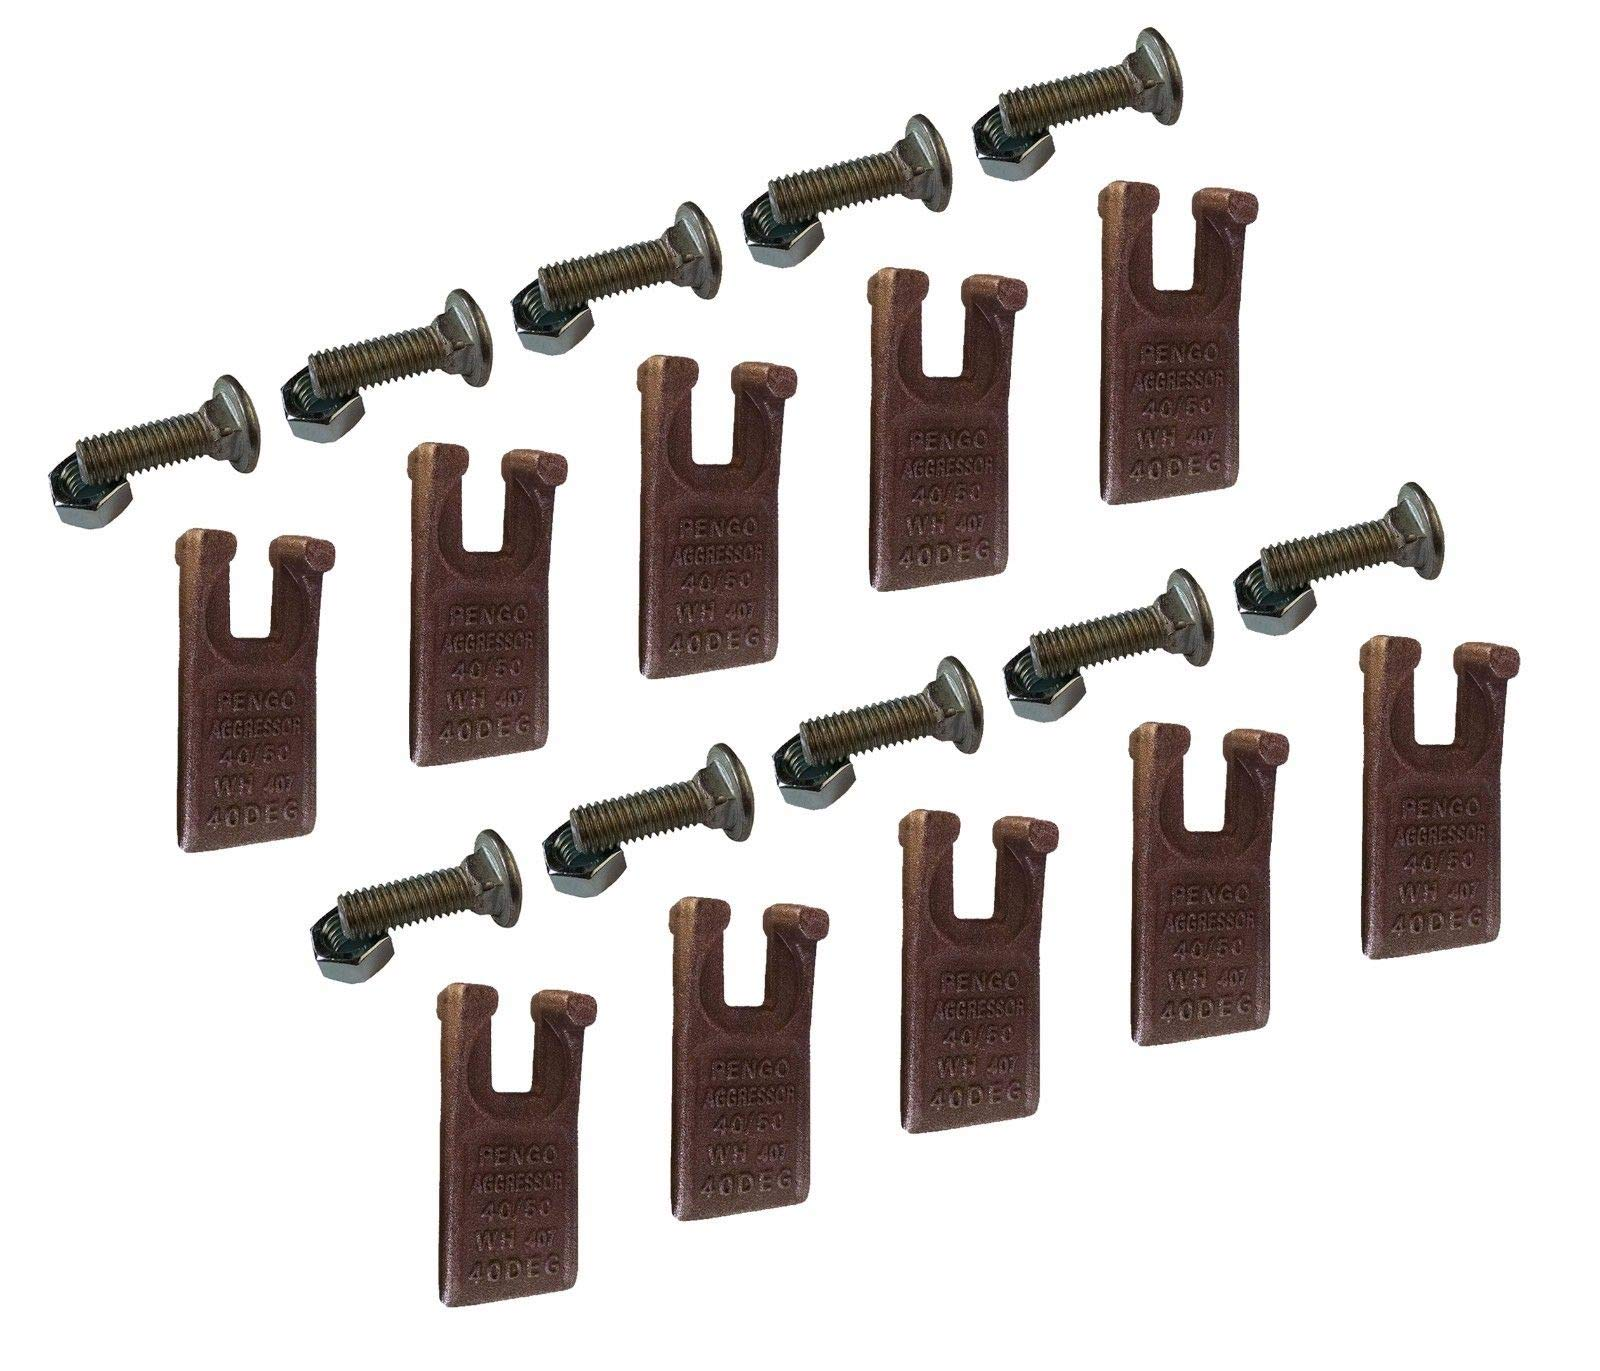 Pengo Auger Tooth - 134501 40/50 Size Tooth for Pengo Aggressor Auger - Set-10 by Digger Supply